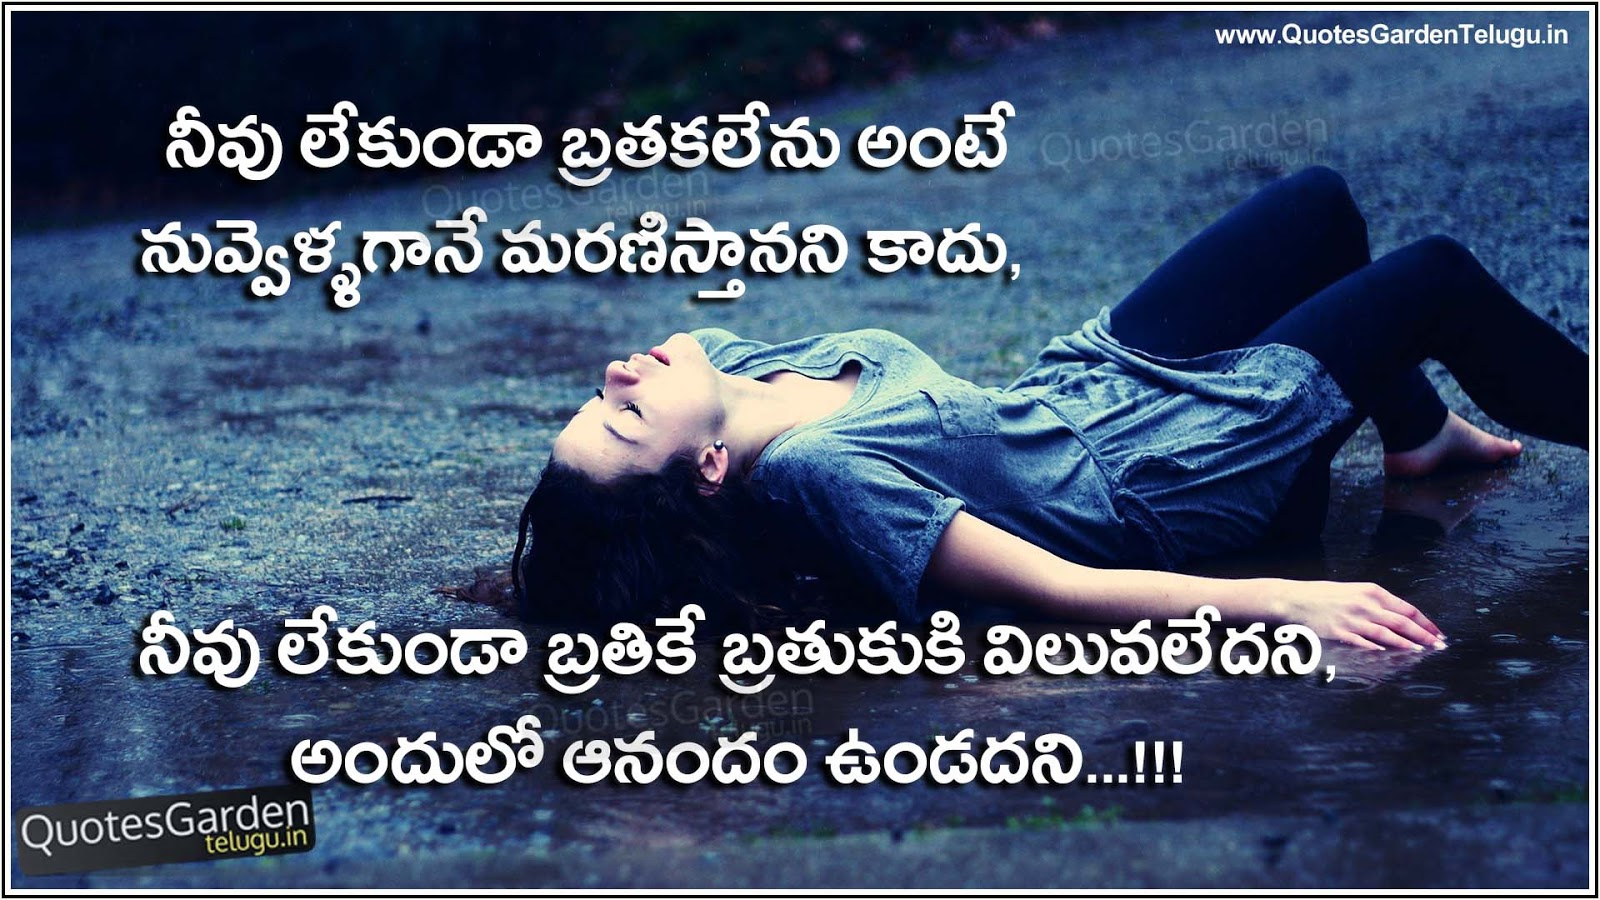 Telugu Love Quotes Best Telugu Love Quotations With Beautiful Love Wallpapers  Quotes